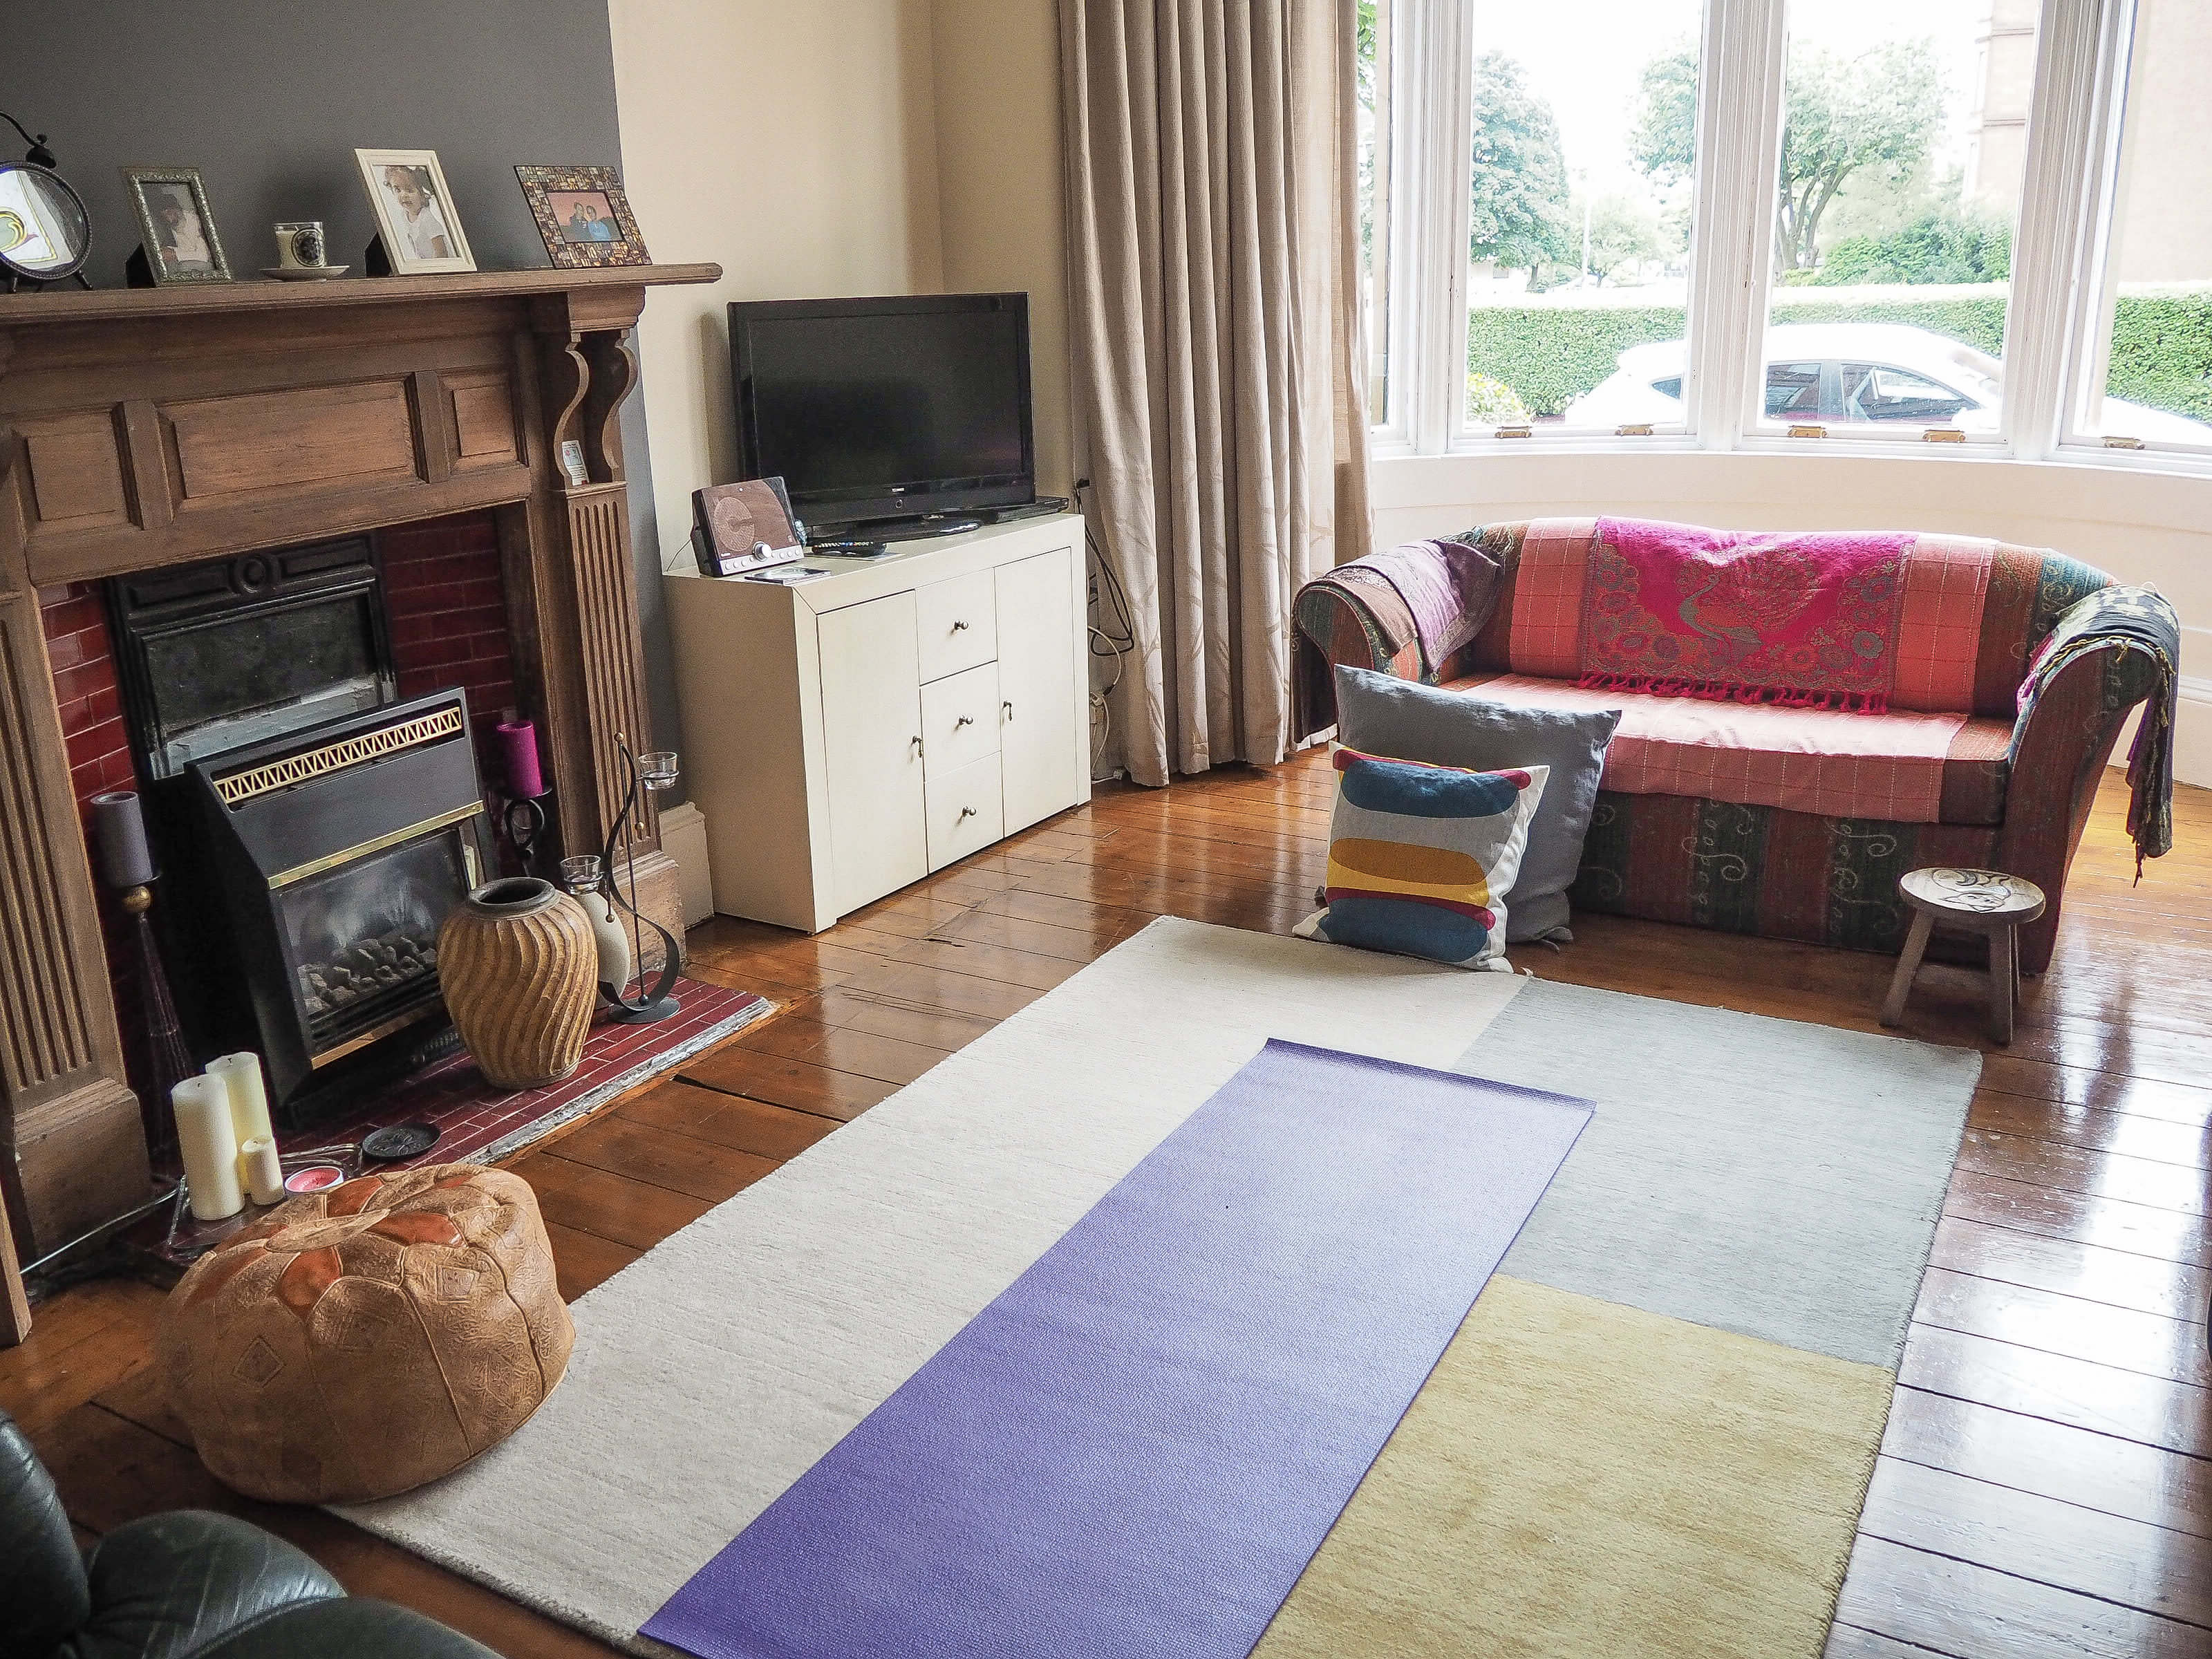 Booking Accomodation with Homestay | Where's Mollie? A UK Travel and Adventure Lifestyle Blog-6